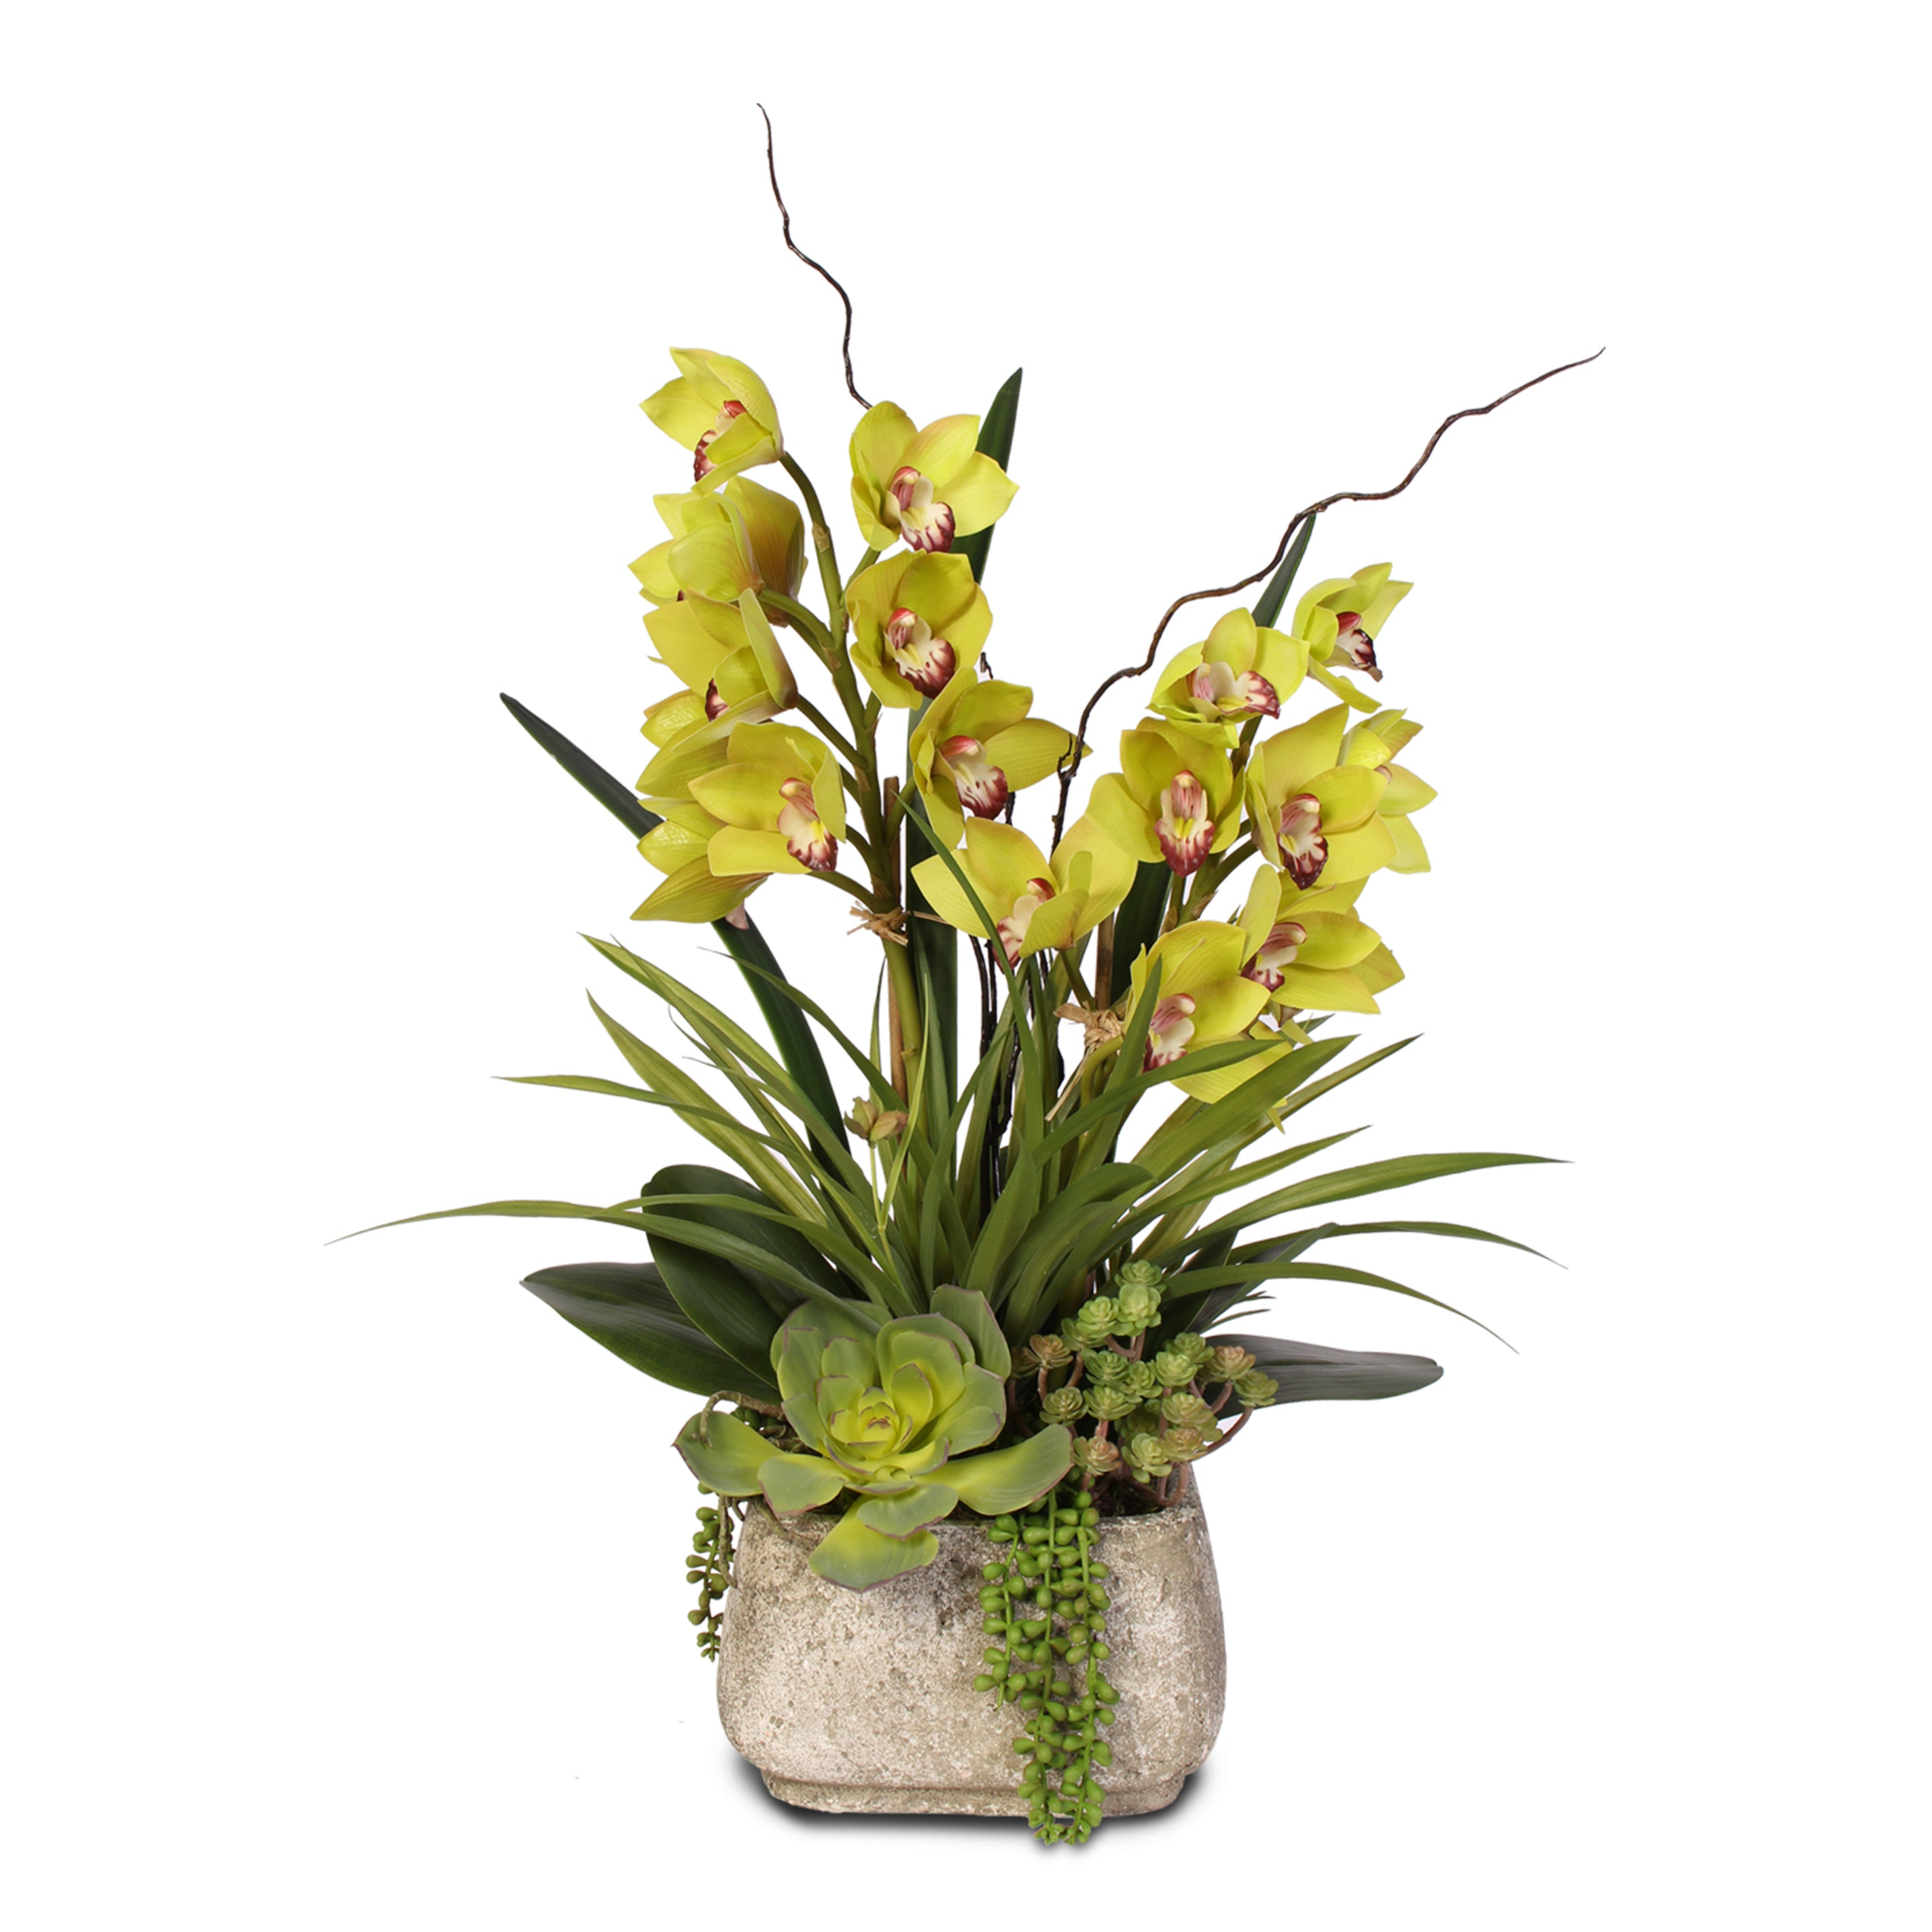 Silk flowers artificial flower arrangements plants at jenny silks alluring green real touch cymbidium orchid artificial succulents in a textured cement pot f mightylinksfo